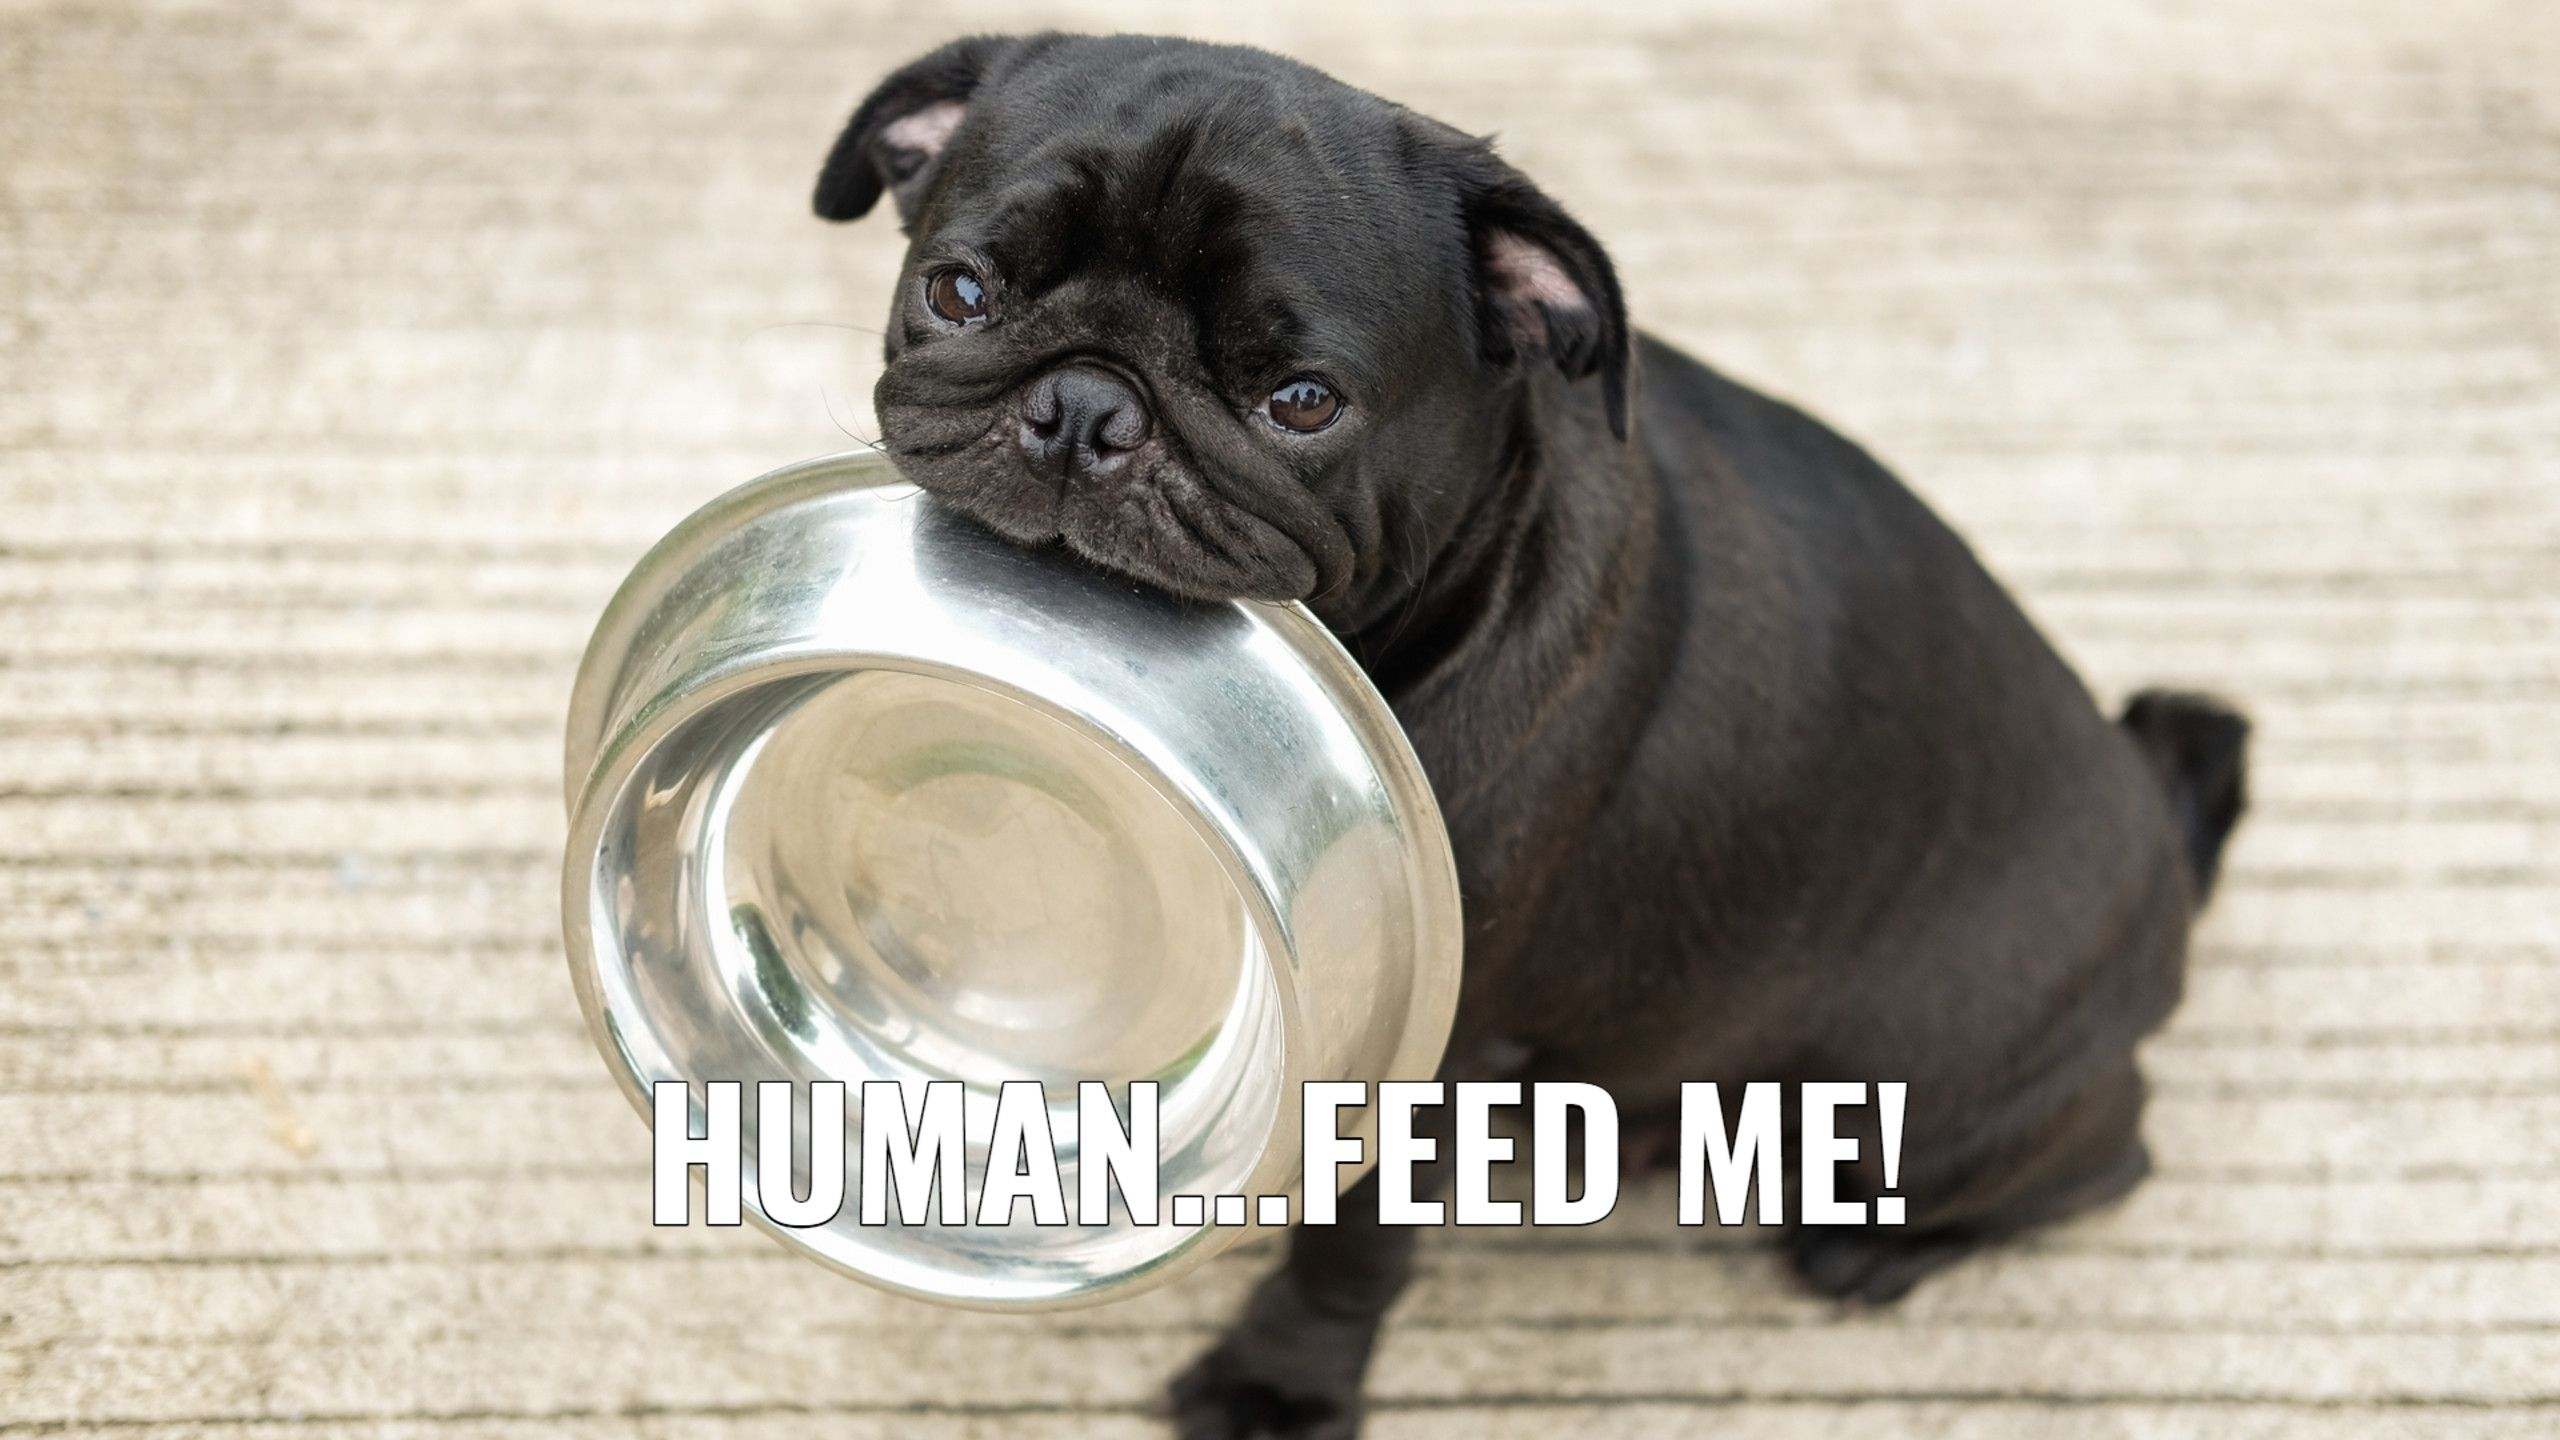 Funny Animal Memes Hd Wallpapers New Tab Funny Animal Memes Will Lighten Up Your Day Enjoy A Wallpaper Image Of Dog Food Recipes Small Dog Breeds Dog Biting